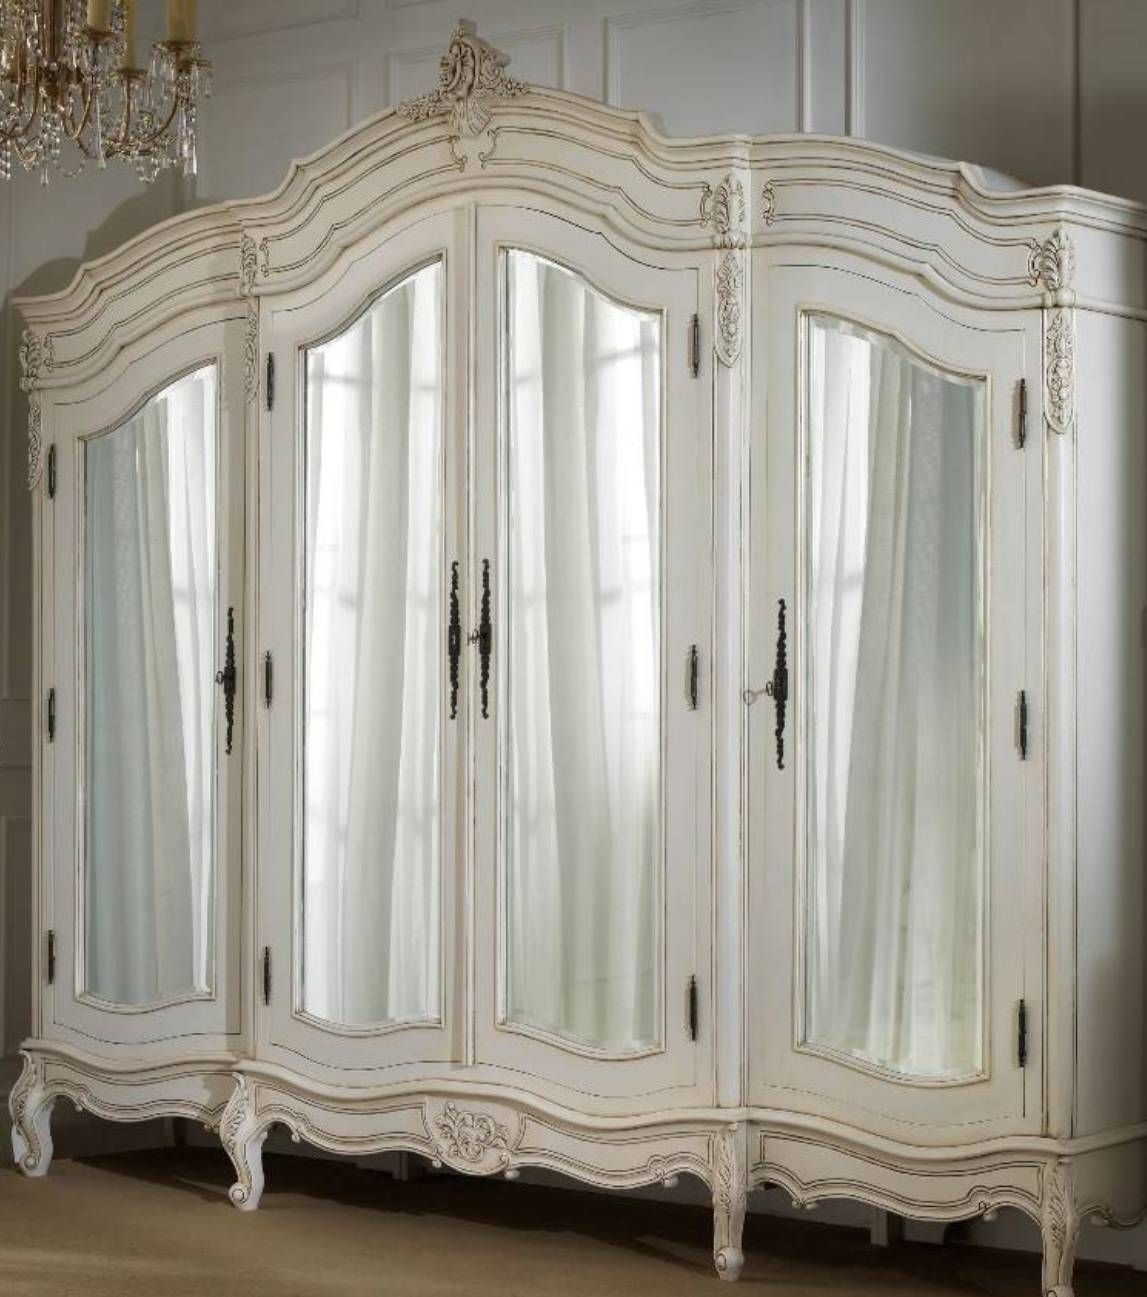 Ordinaire White French Armoire Wardrobe With Mirror : Beautiful French Armoire  Wardrobe , Furniture